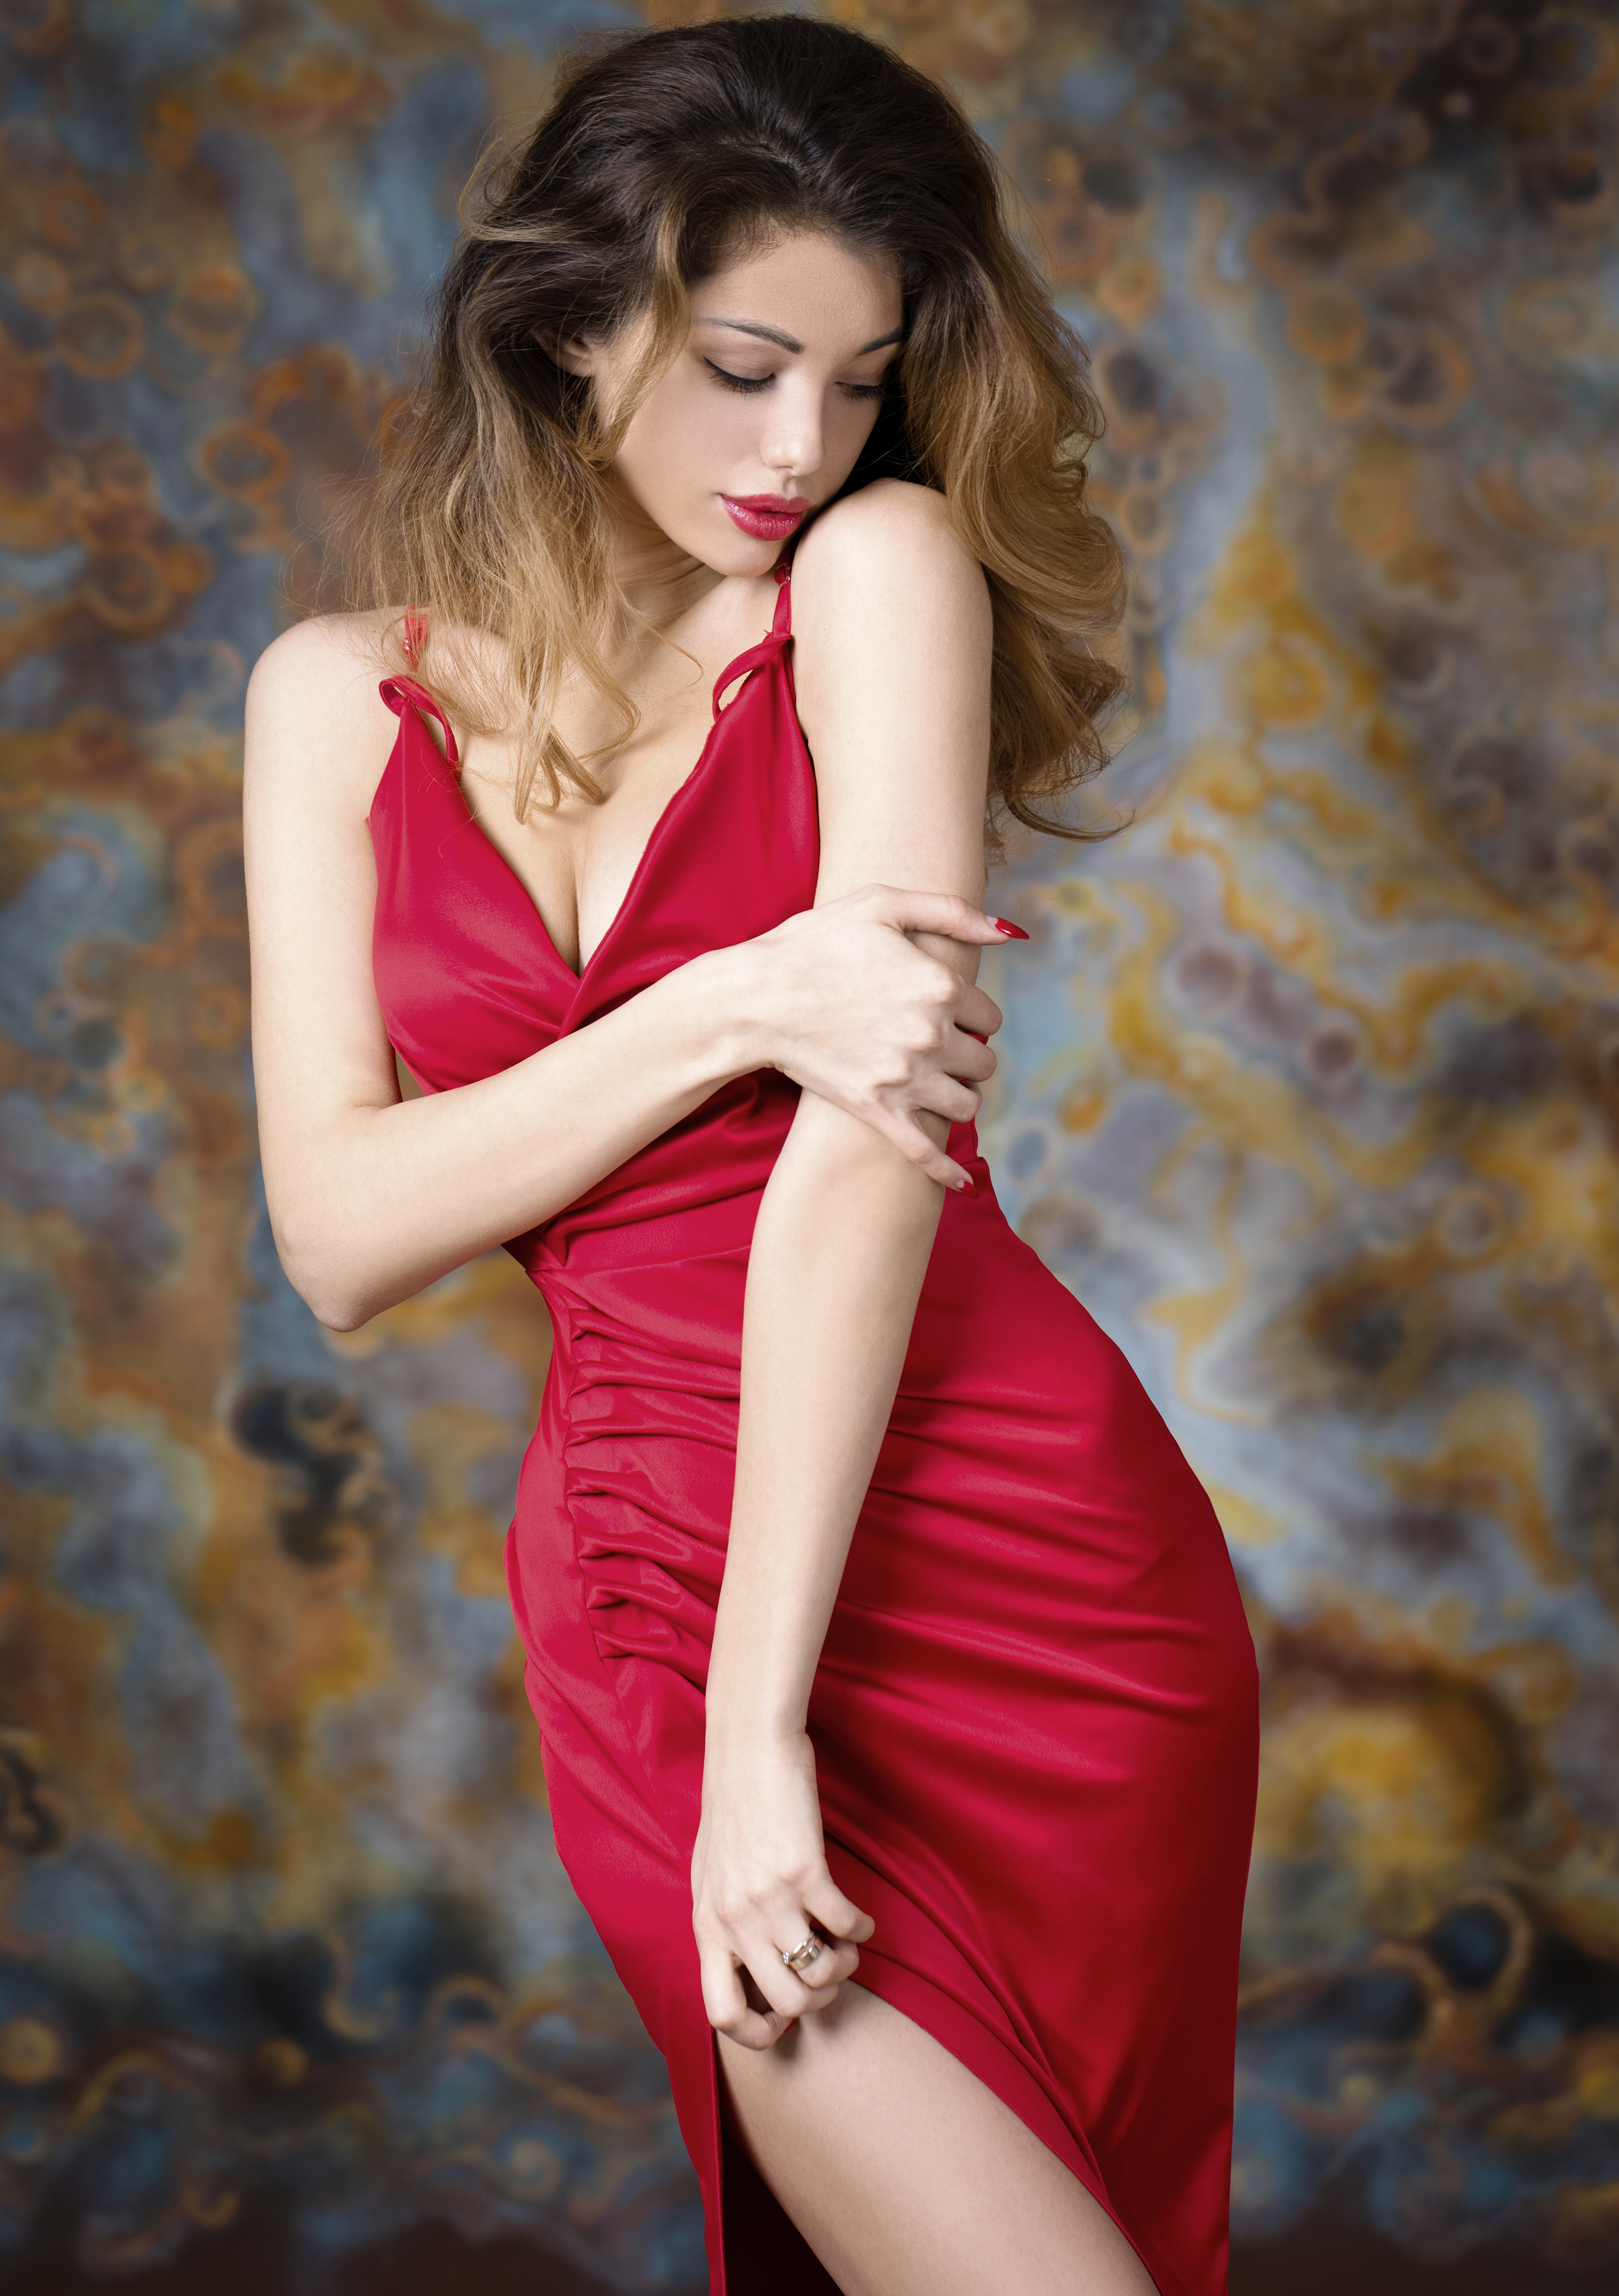 Red skirt, beauty, character 55305